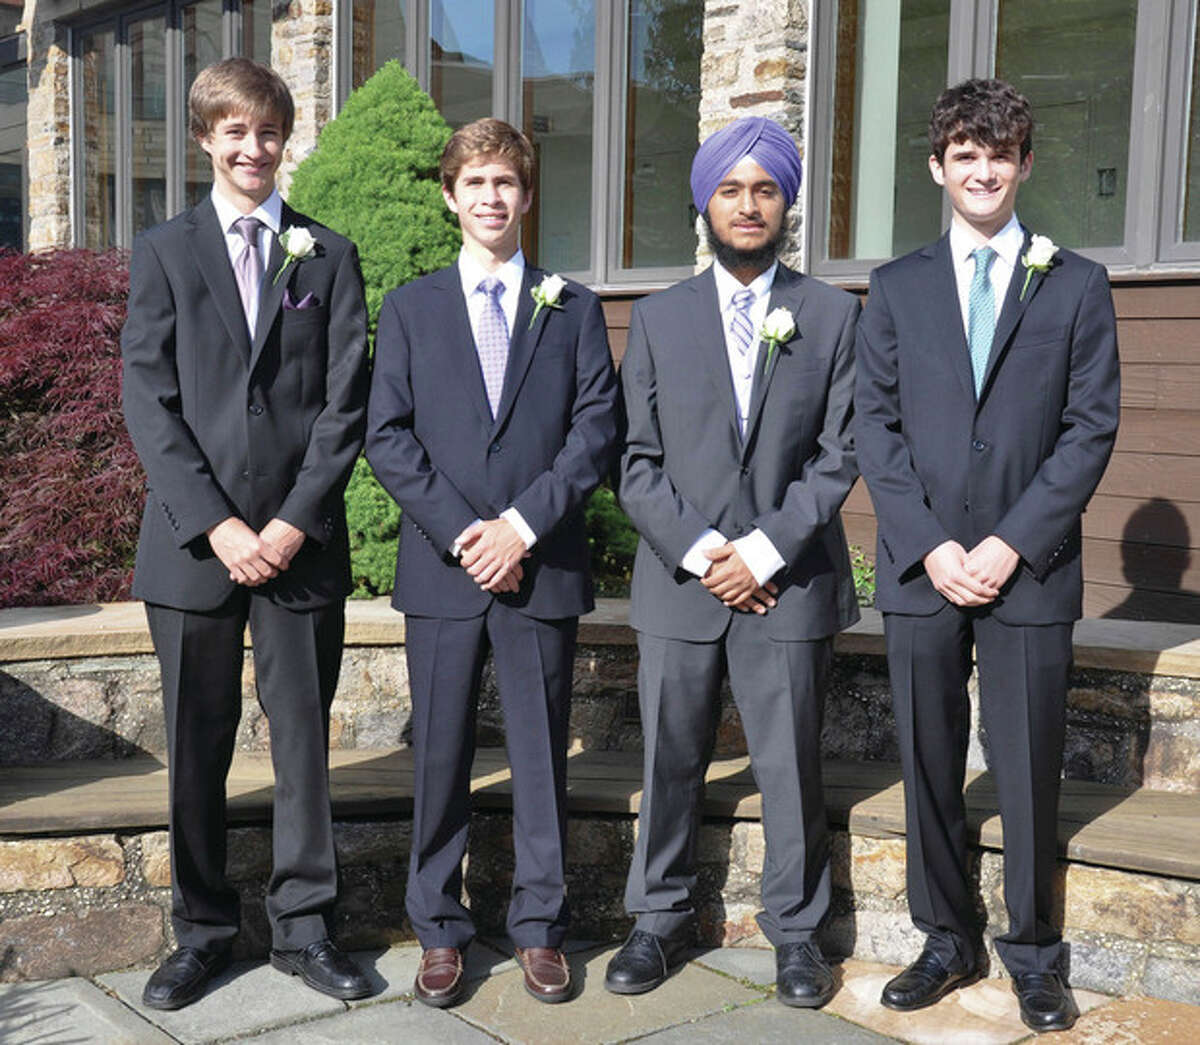 Recent Greens Farms Academy graduates from Wilton include, from left, Jon Bauerfeld, Will Picoli, Yuvi Singh and Avery Salinger. Contributed photo.